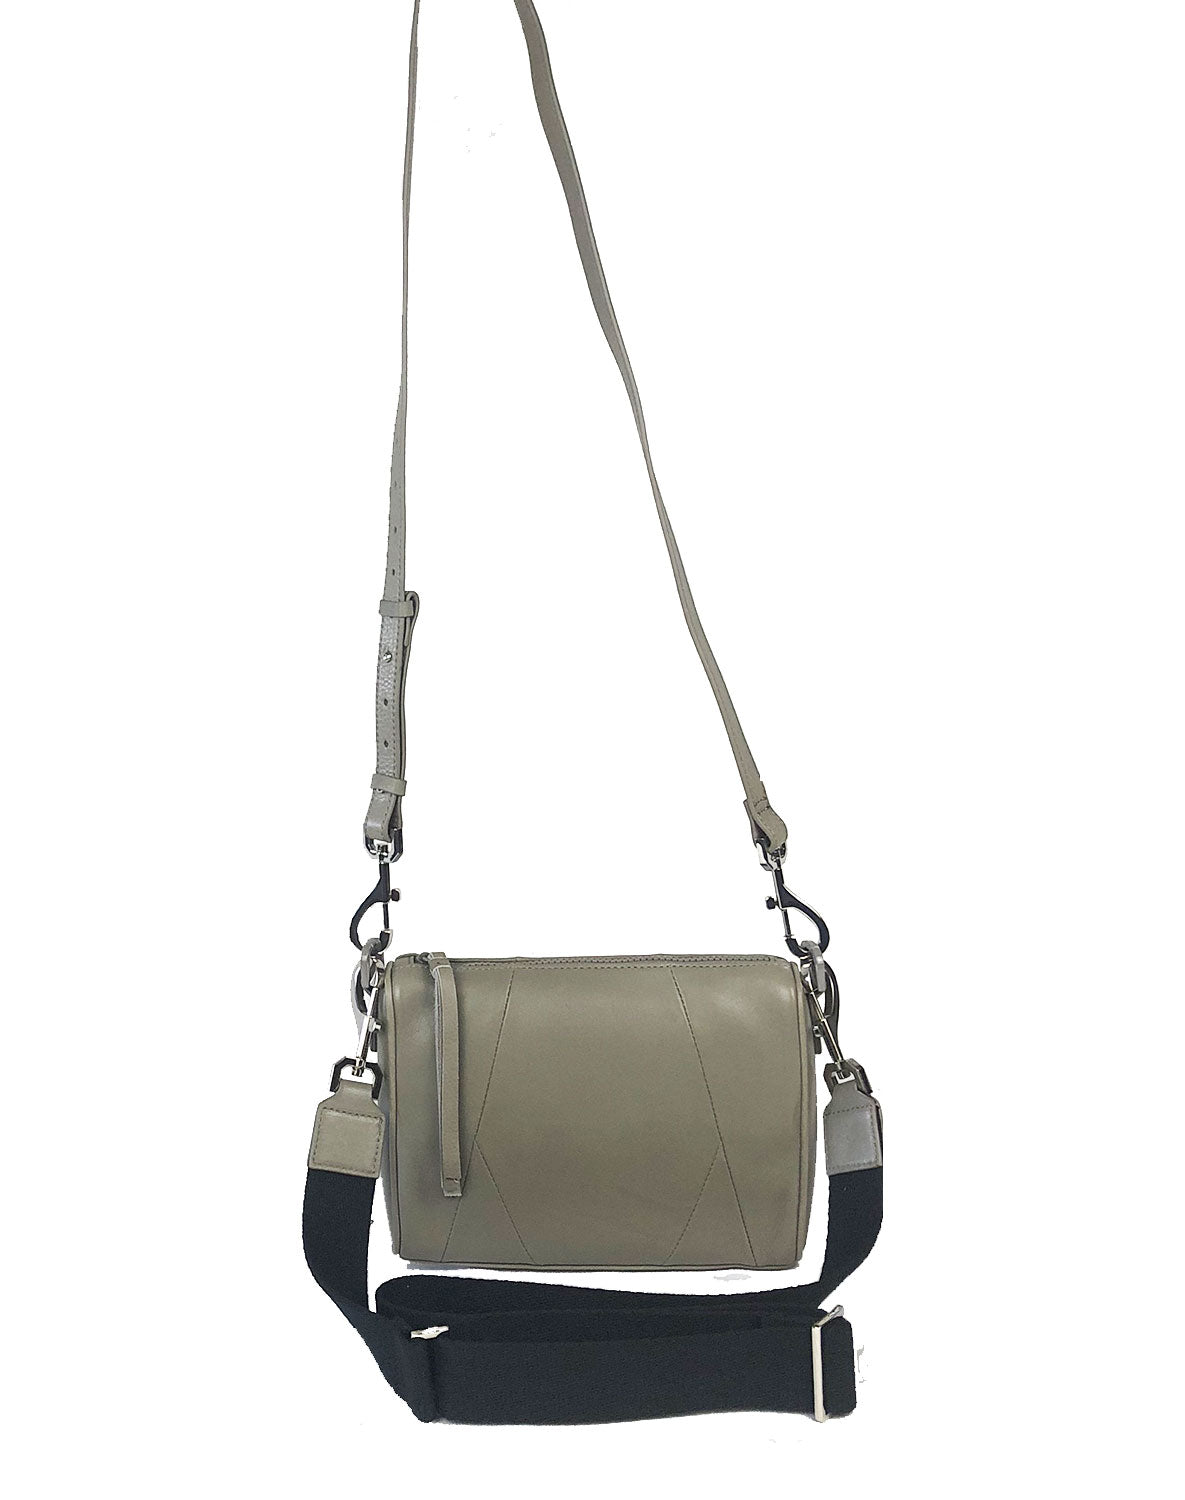 Chrissy top zip crossbody bag in Grey